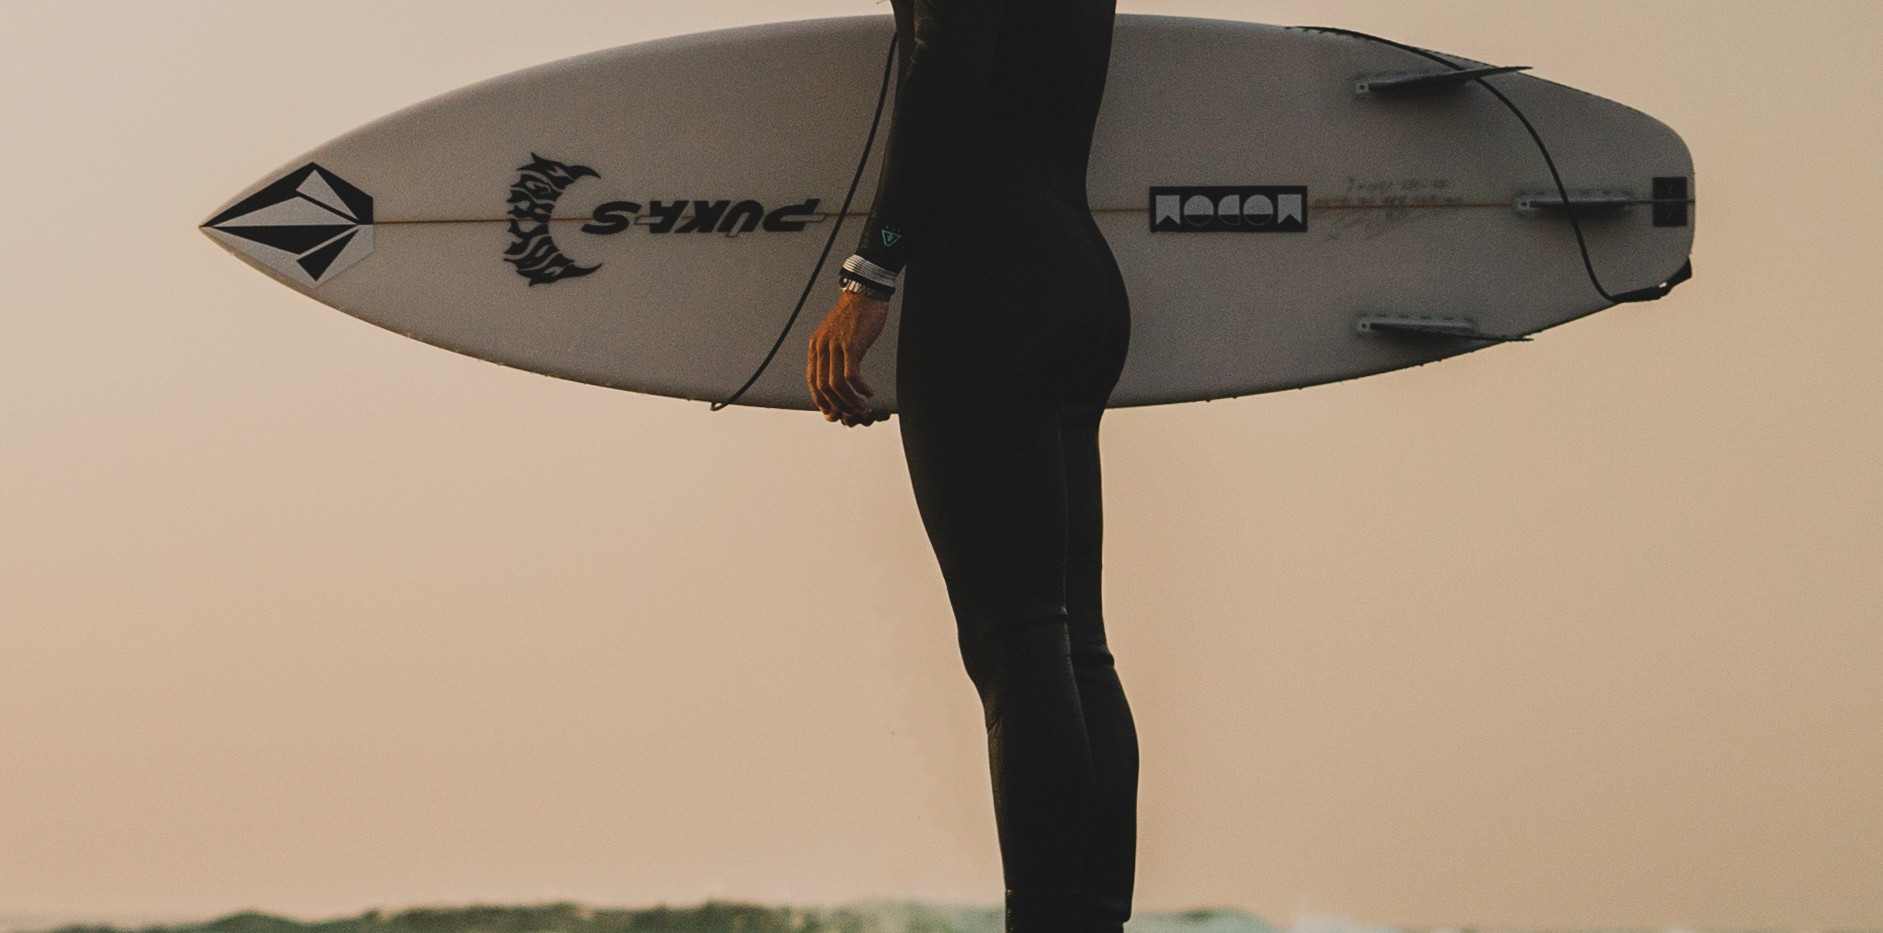 Thanks God for this surfing session!